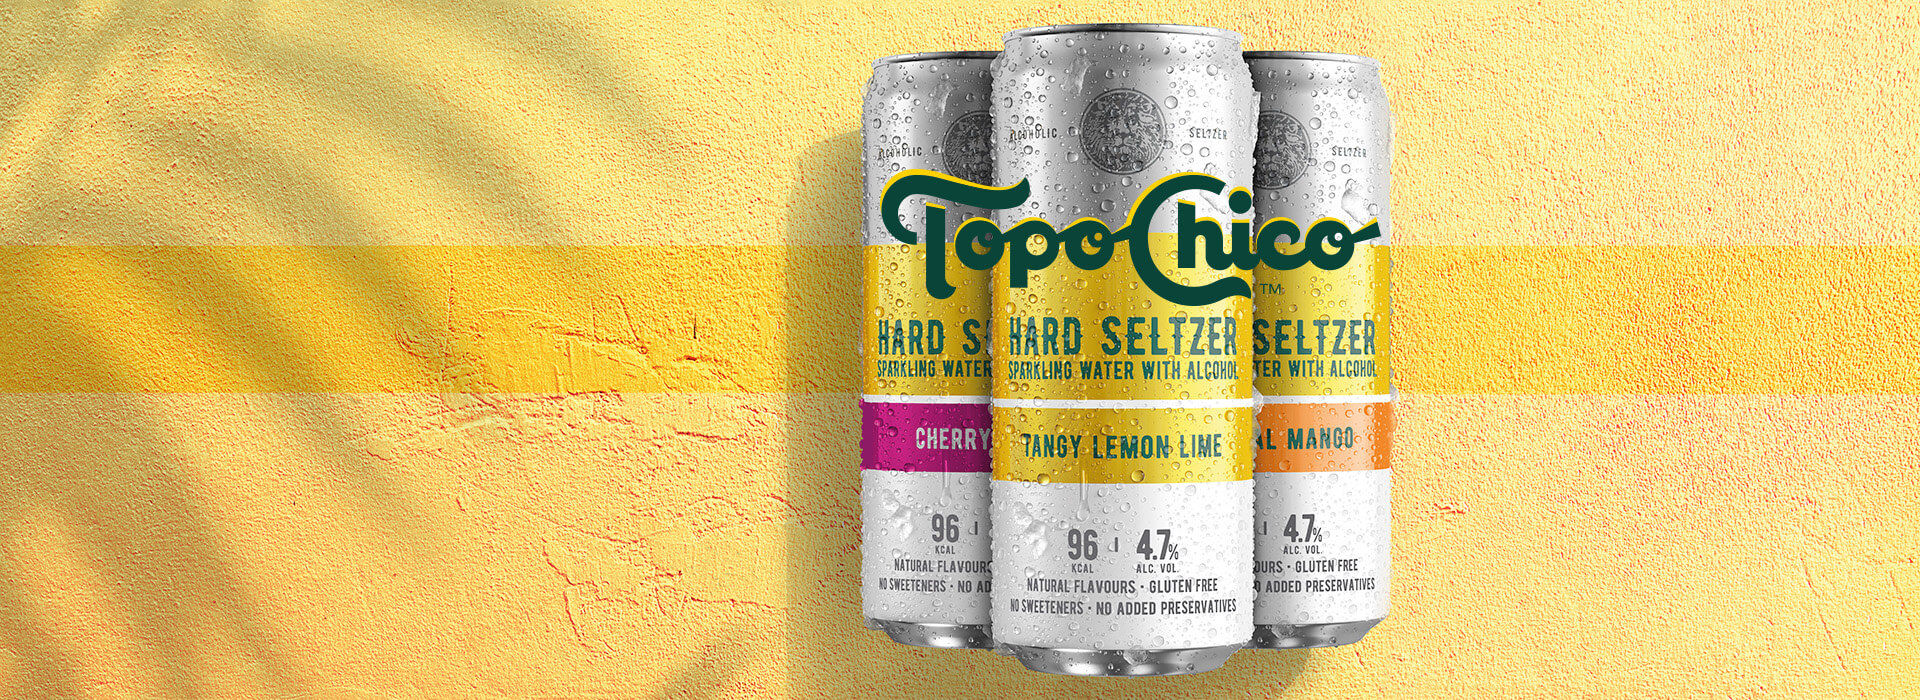 Three cool cans of Topo Chico Hard Seltzer